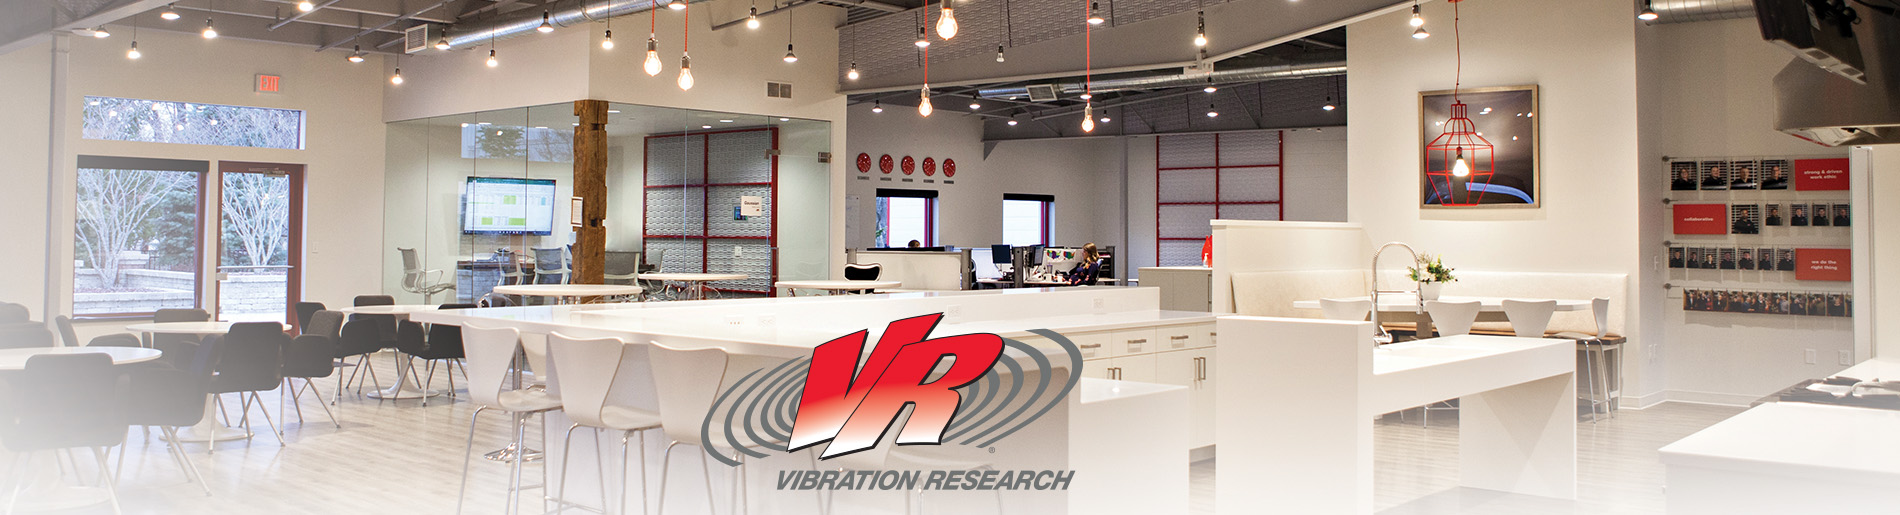 Vibration Research